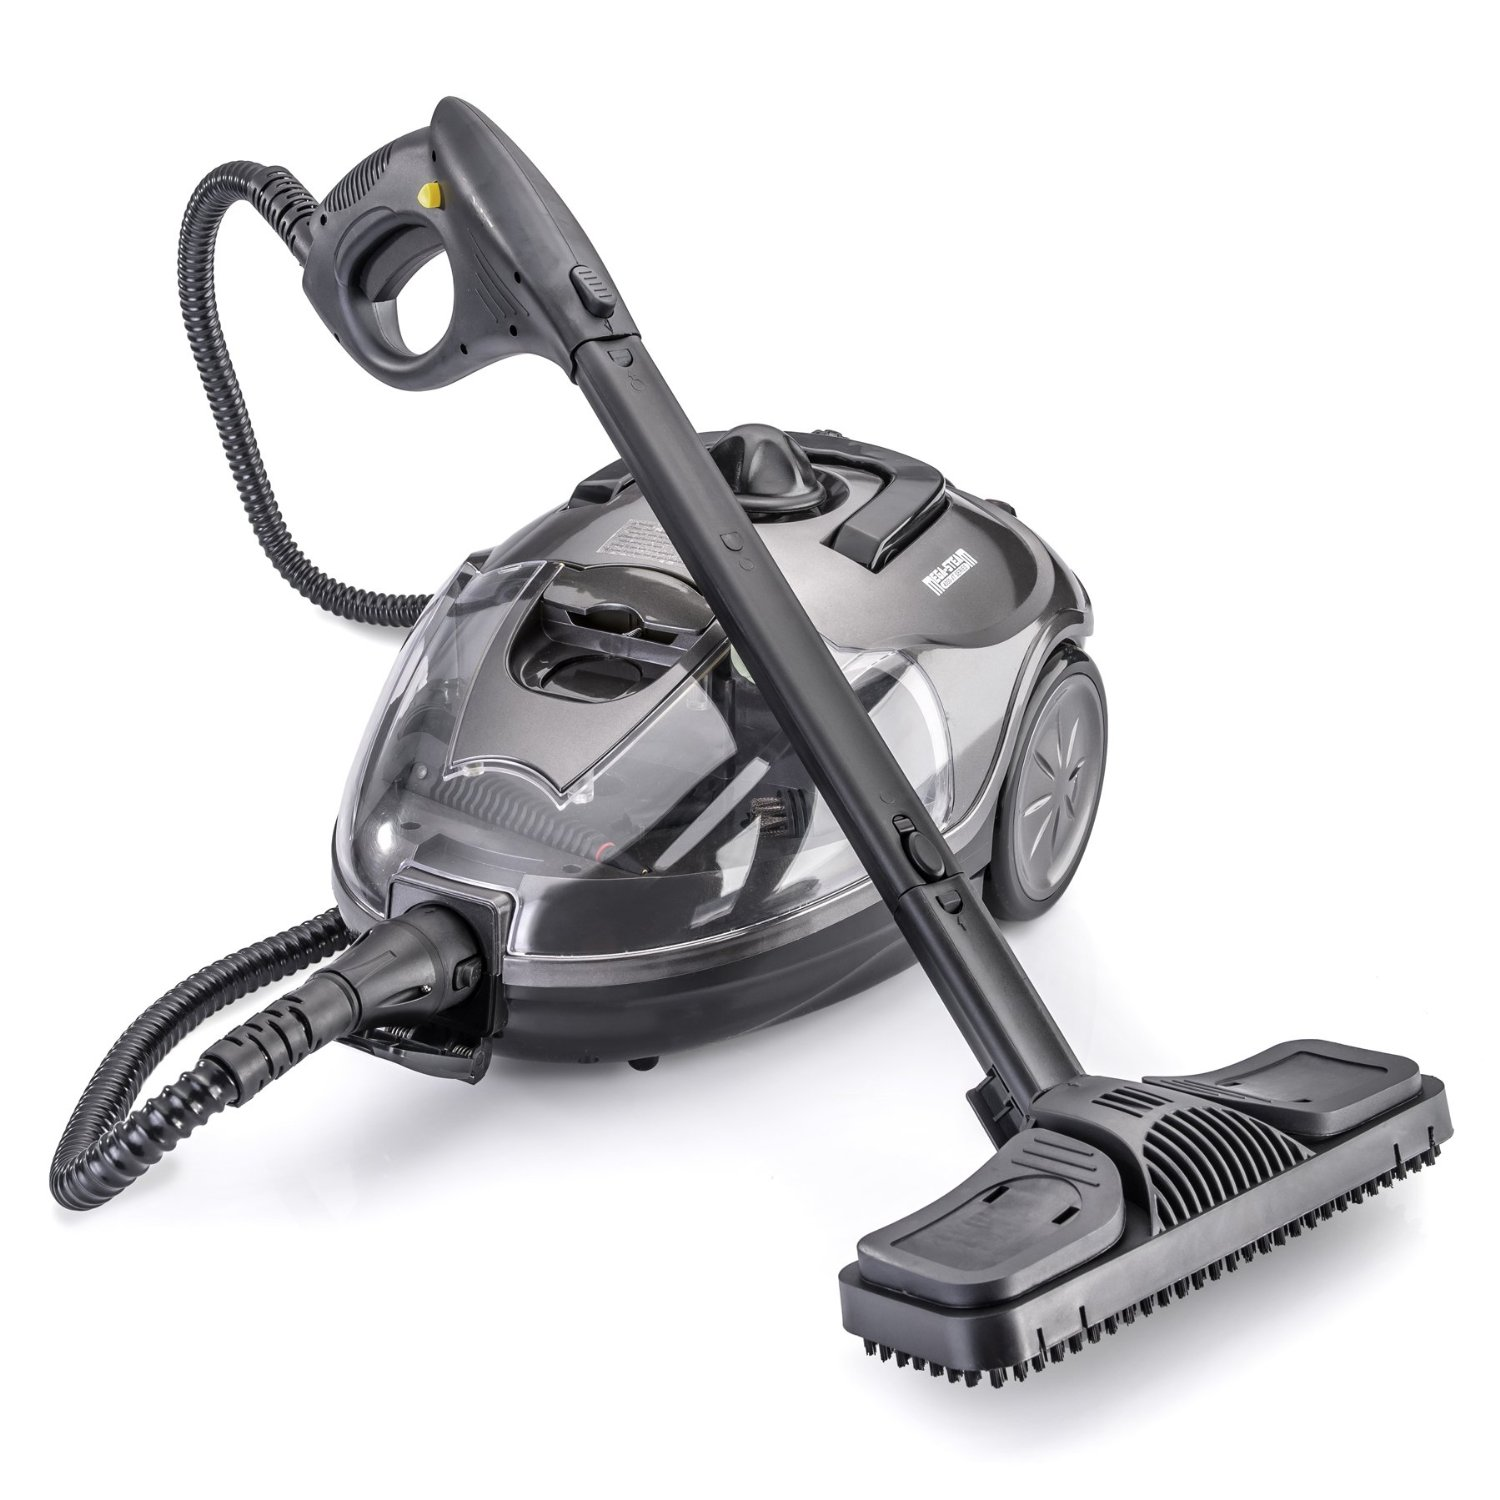 Best Grout Cleaner Detailed Reviews Best Way To Clean Grout - Best steam cleaner to clean grout